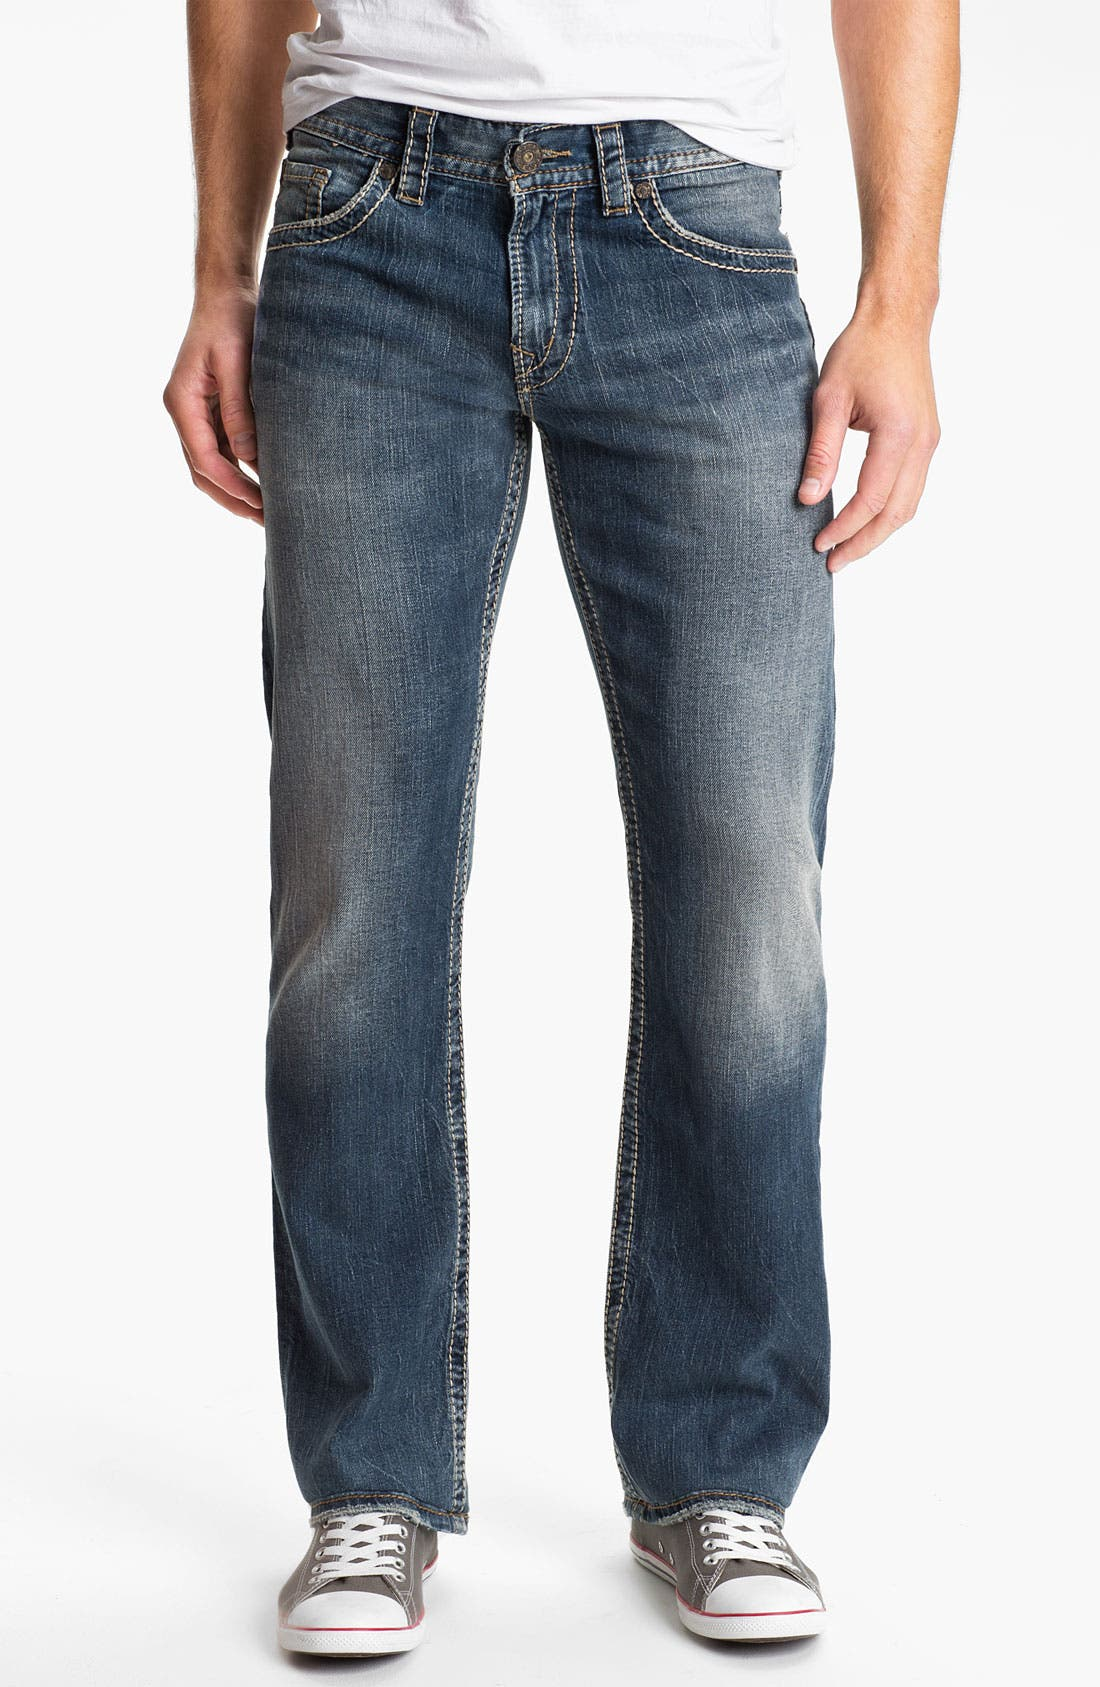 Alternate Image 2  - Silver Jeans Co. 'Zac' Straight Leg Jeans (Indigo)